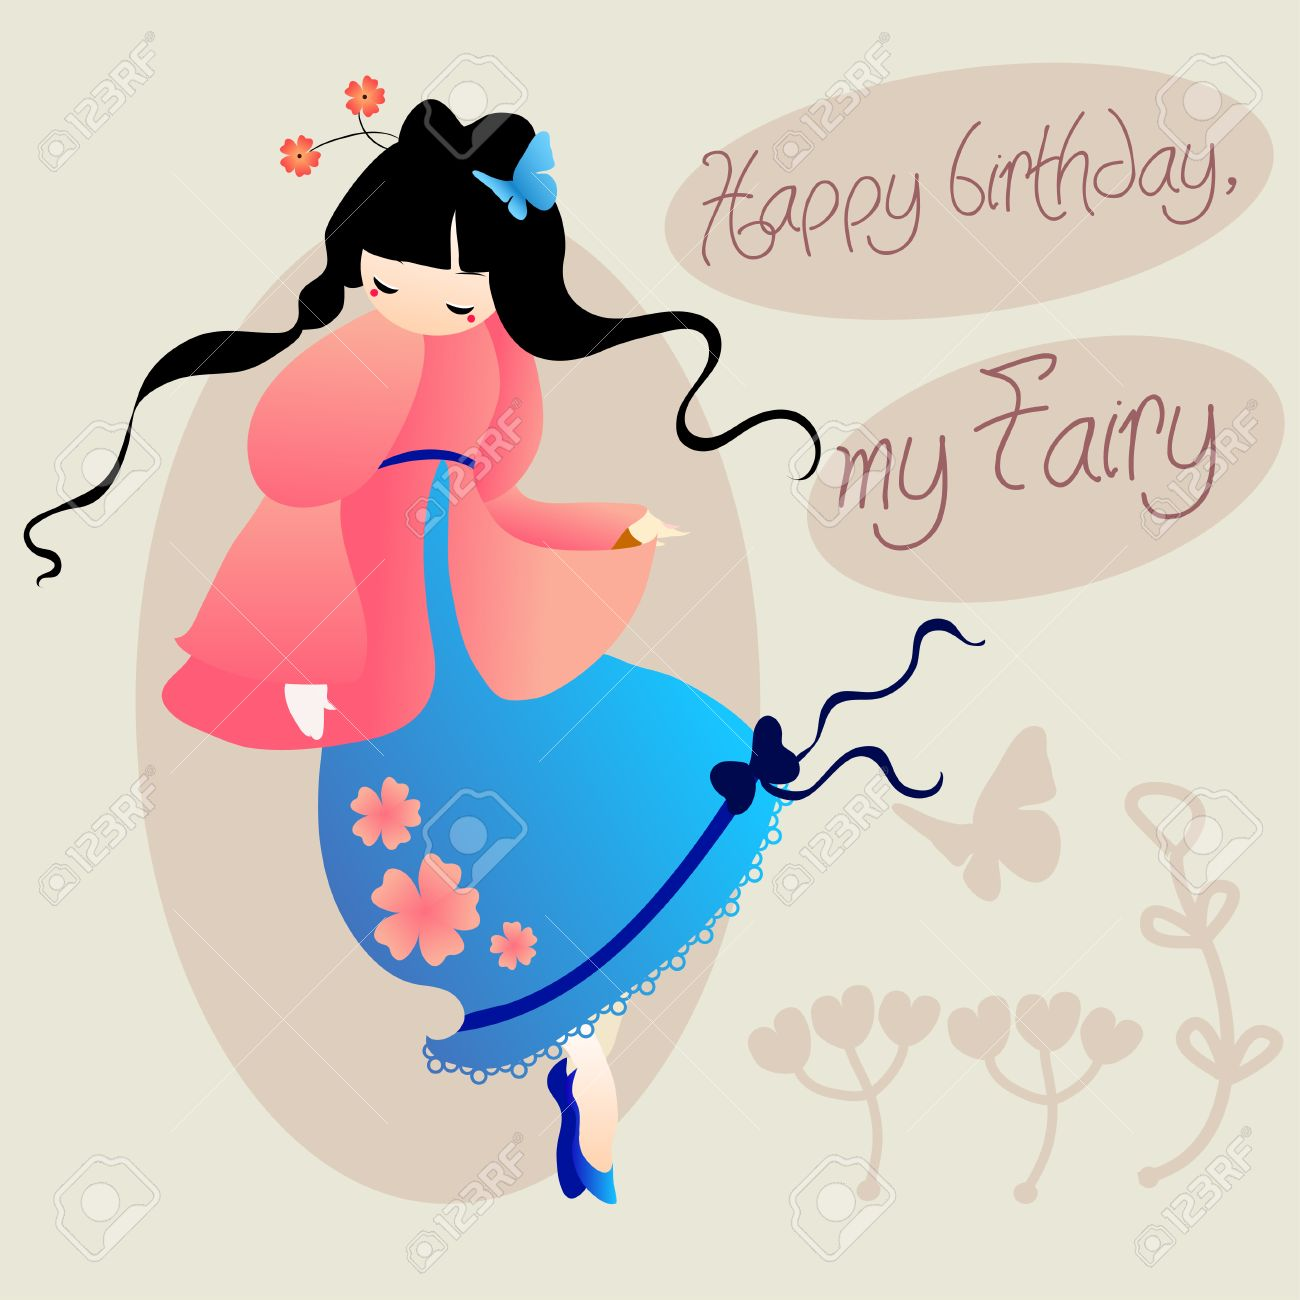 Happy Birthday My Fairy. Cute Card For A Girl With A Cute Little Girl In